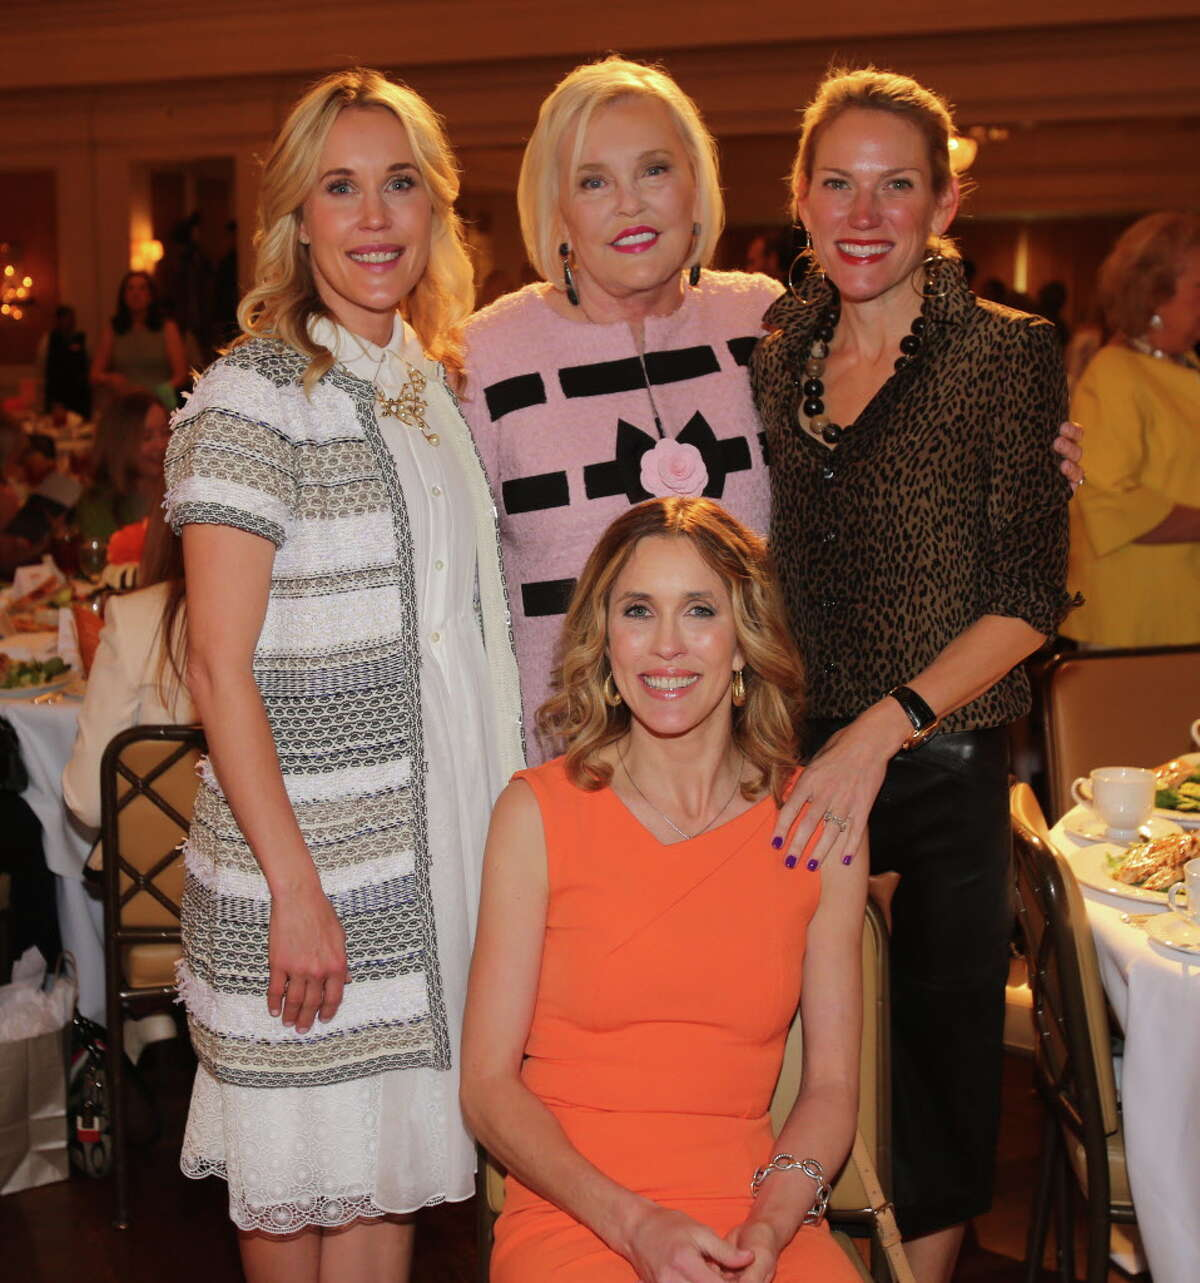 Amanda Chipman, Sharon Wilson, Erin Maggi, and Wendy Bedortha at the 11th annual MS on the Move luncheon.